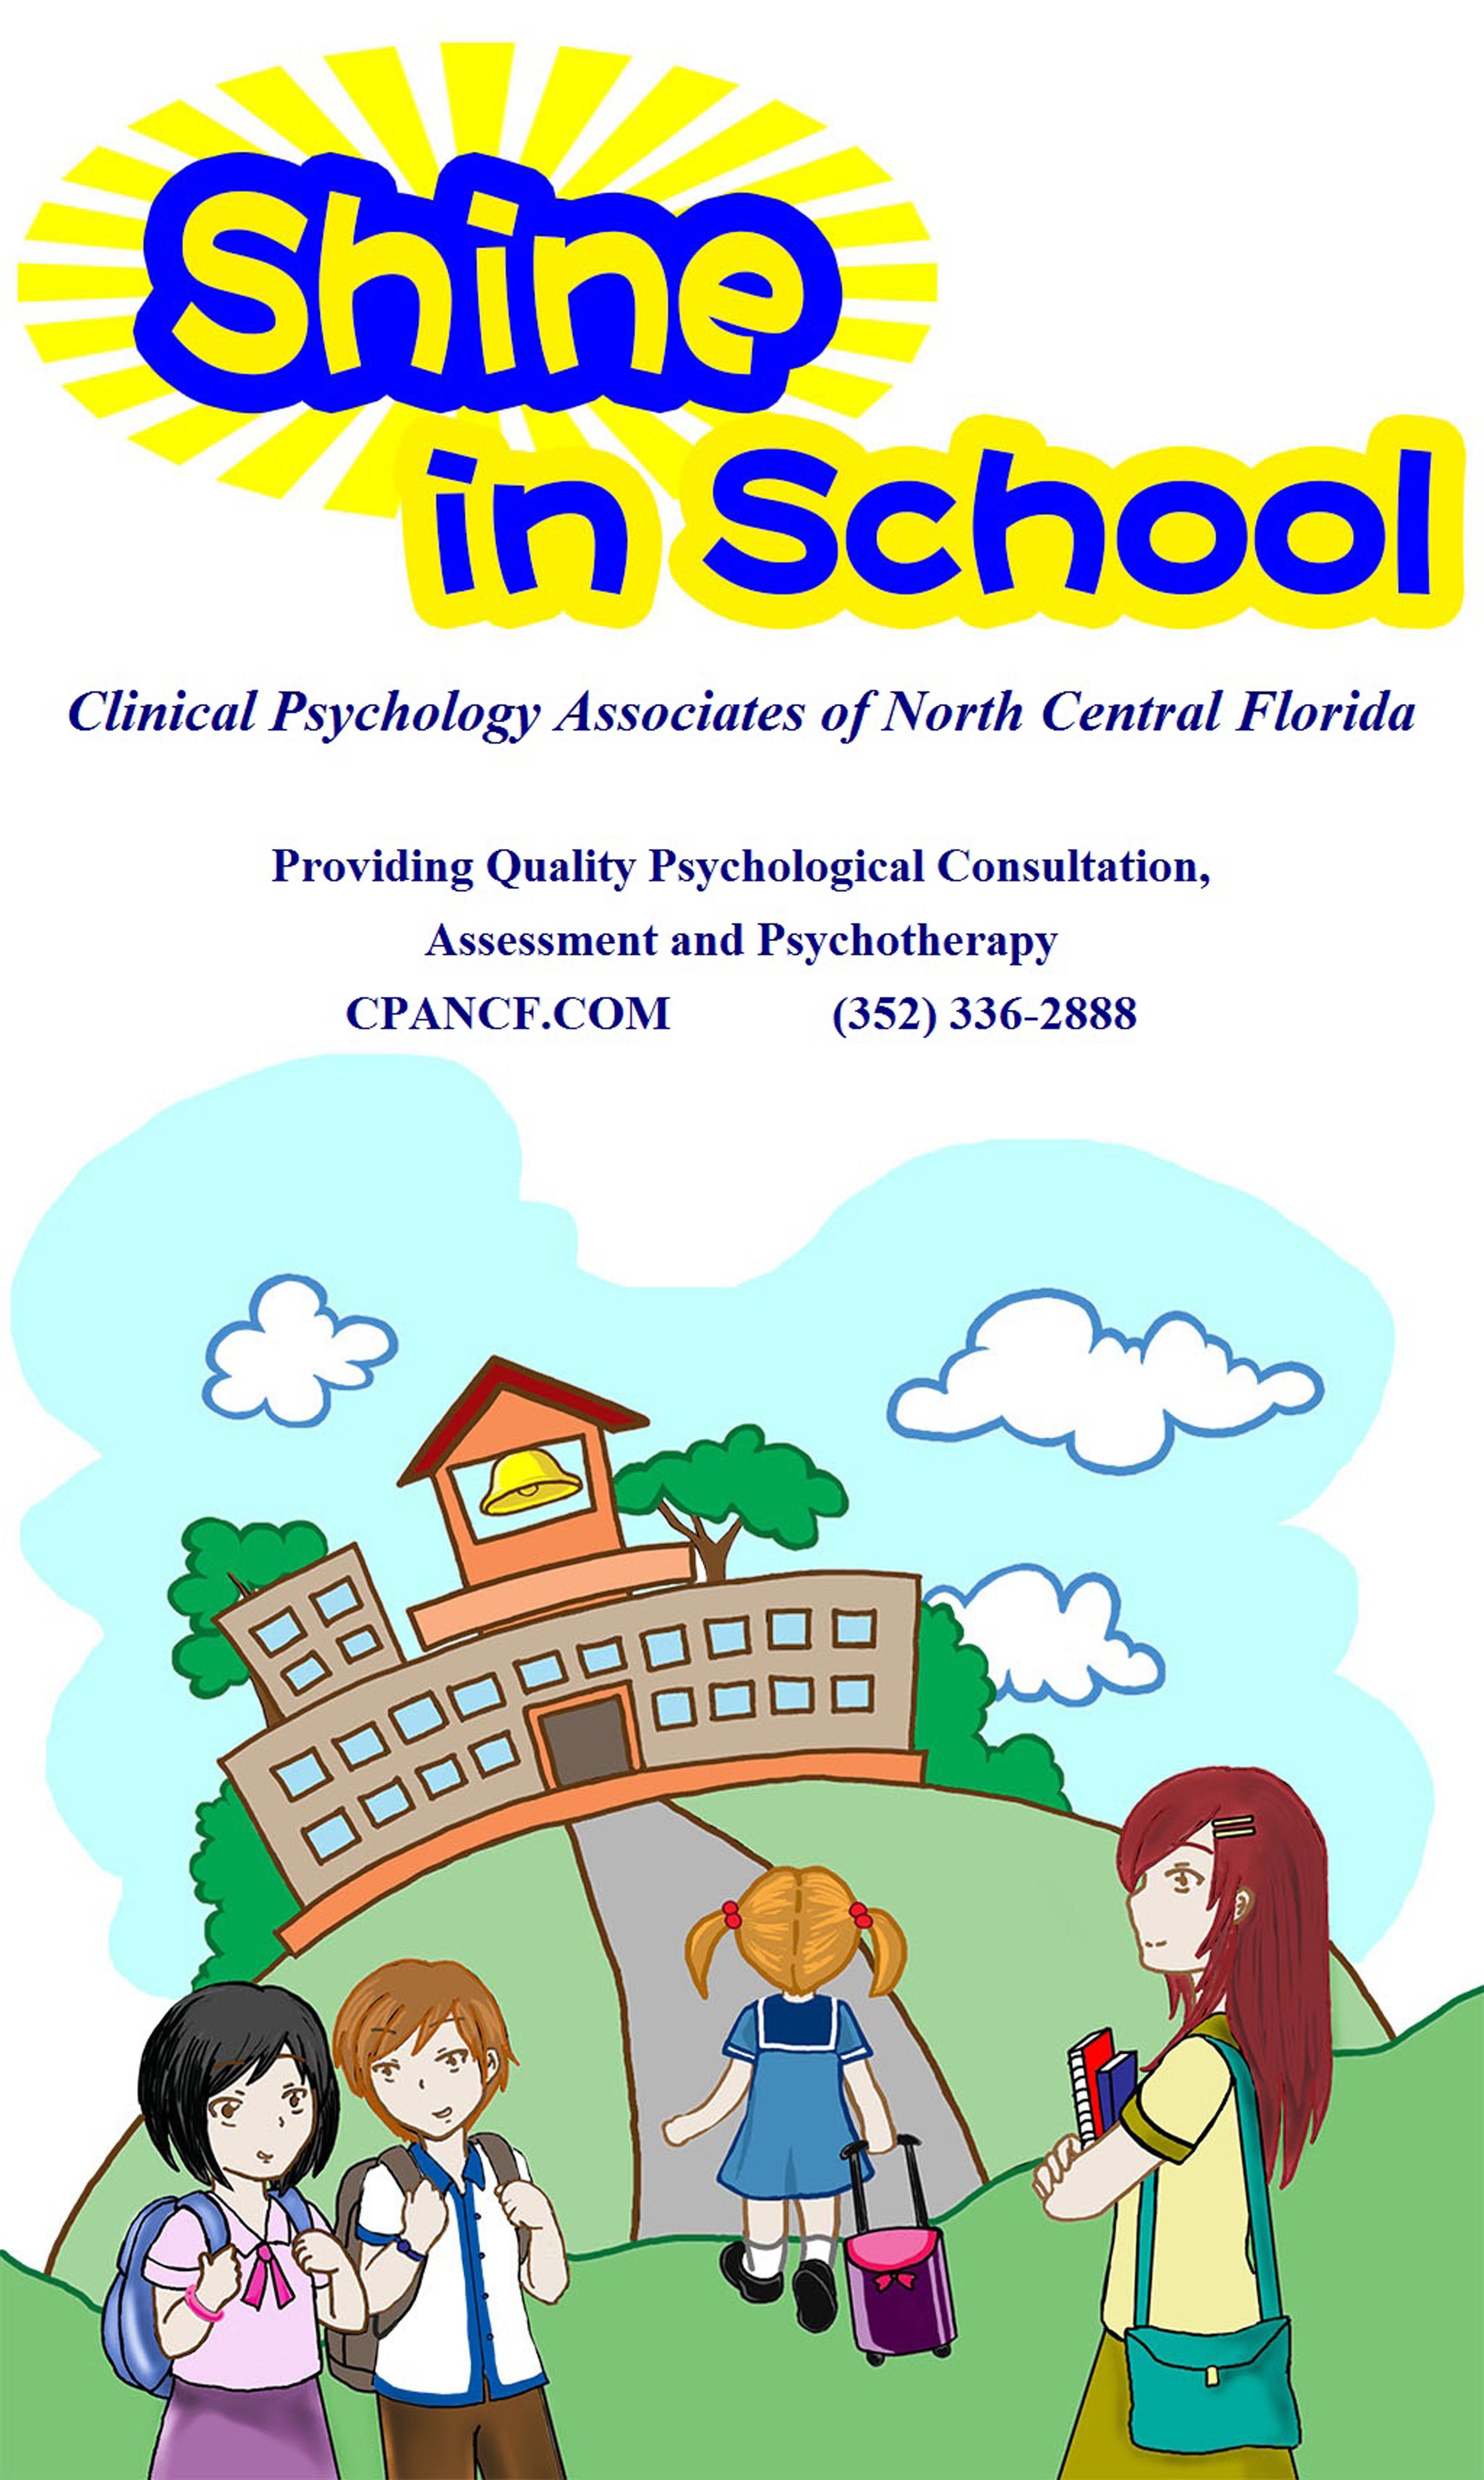 Shine in School all rights reserved Clinical Psychology Associates of North Central Florida